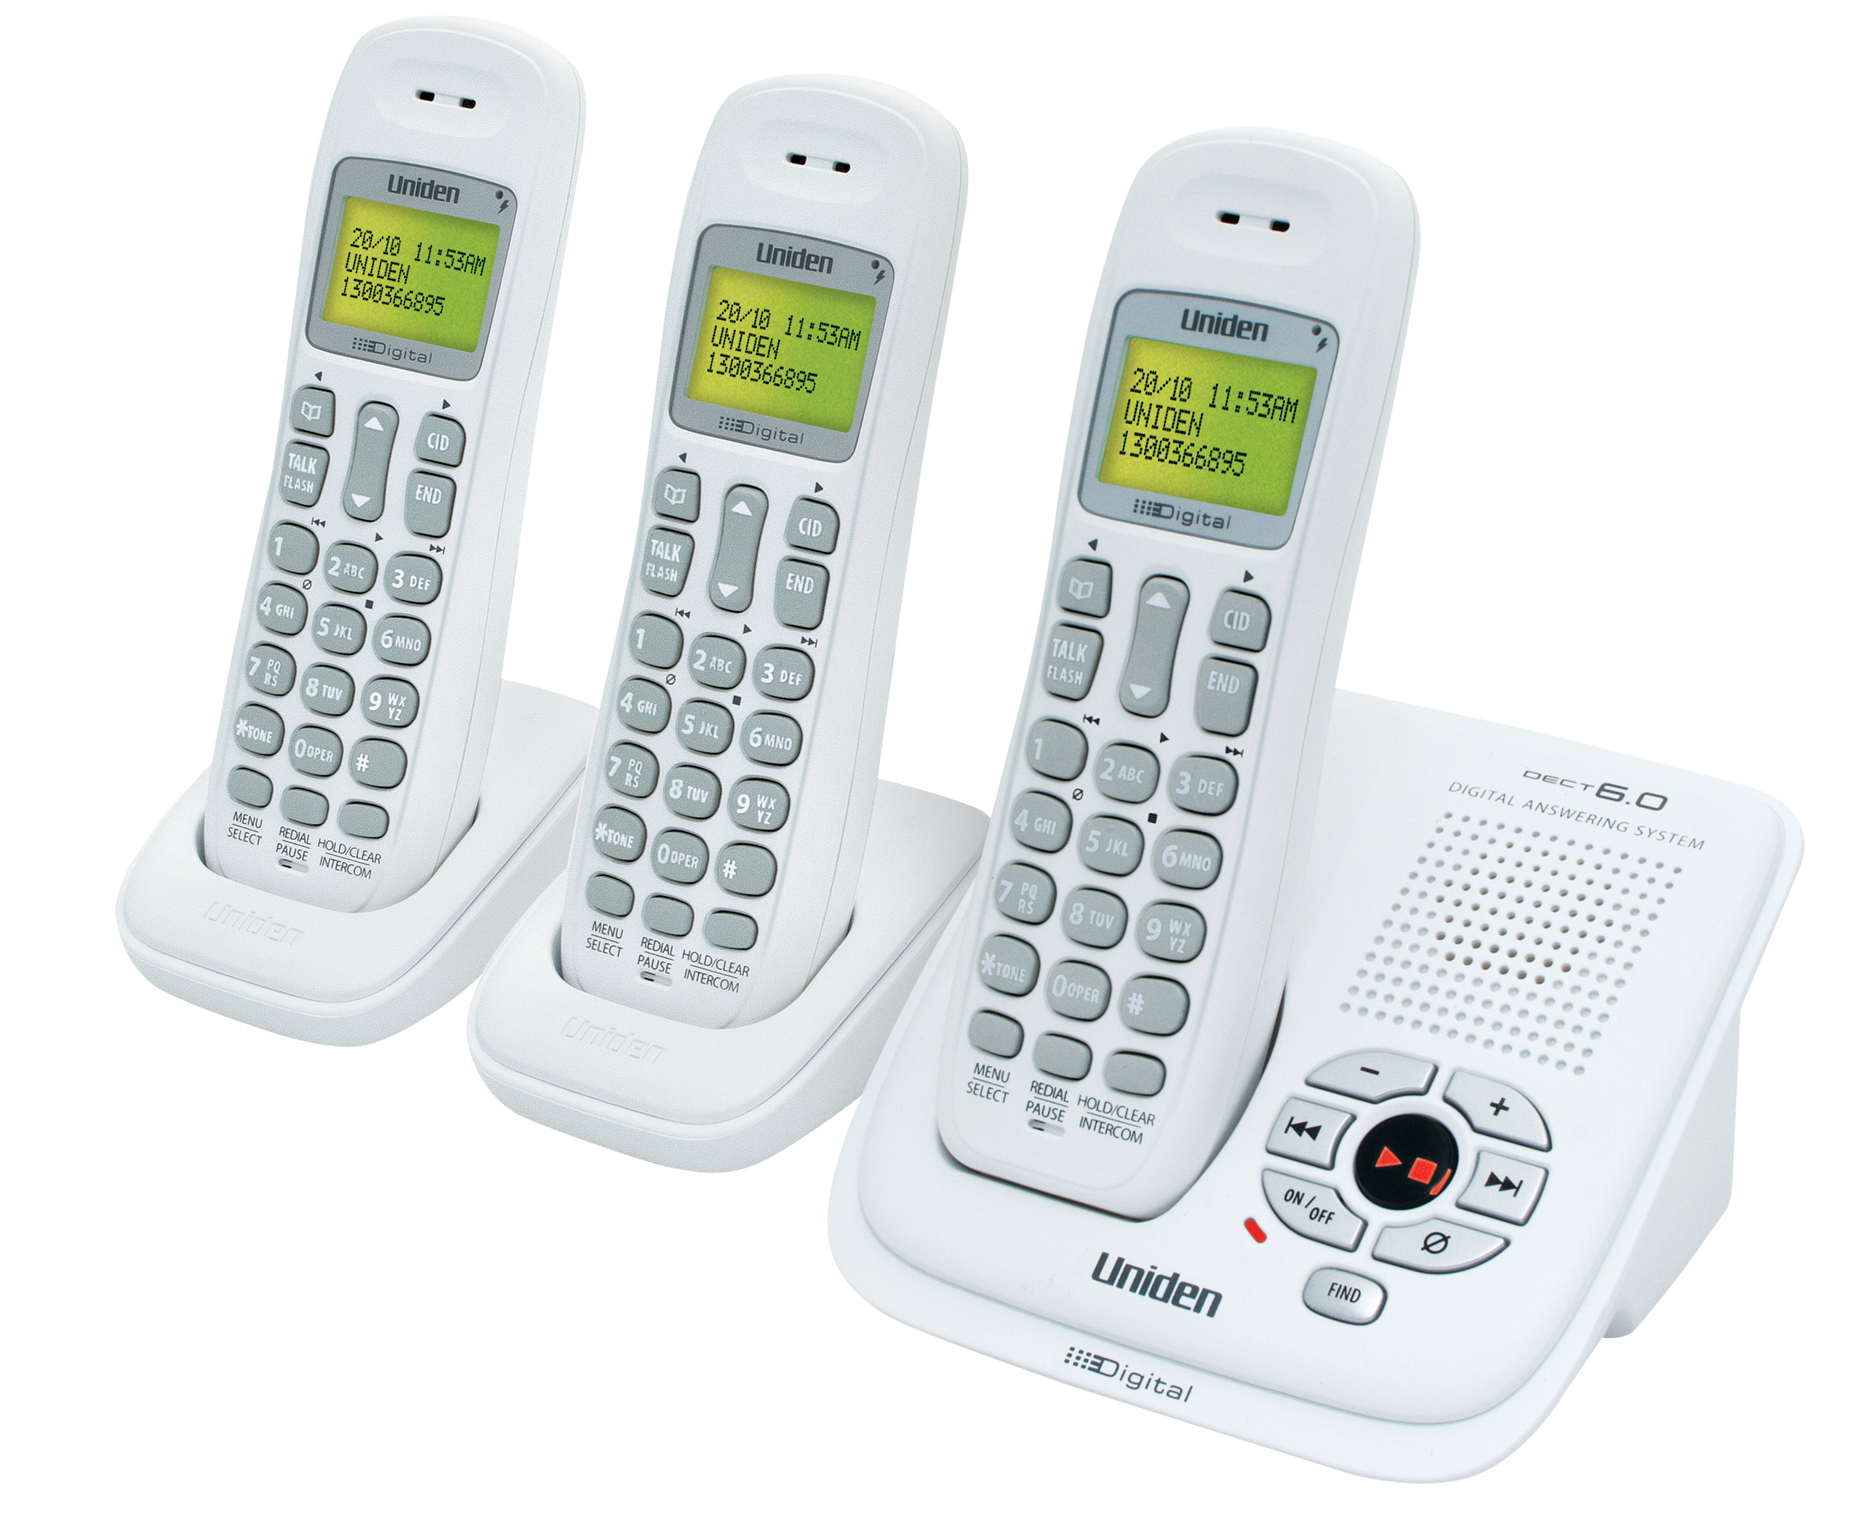 Vtech Australia Phone Answering Machine Instructions Manual Guide